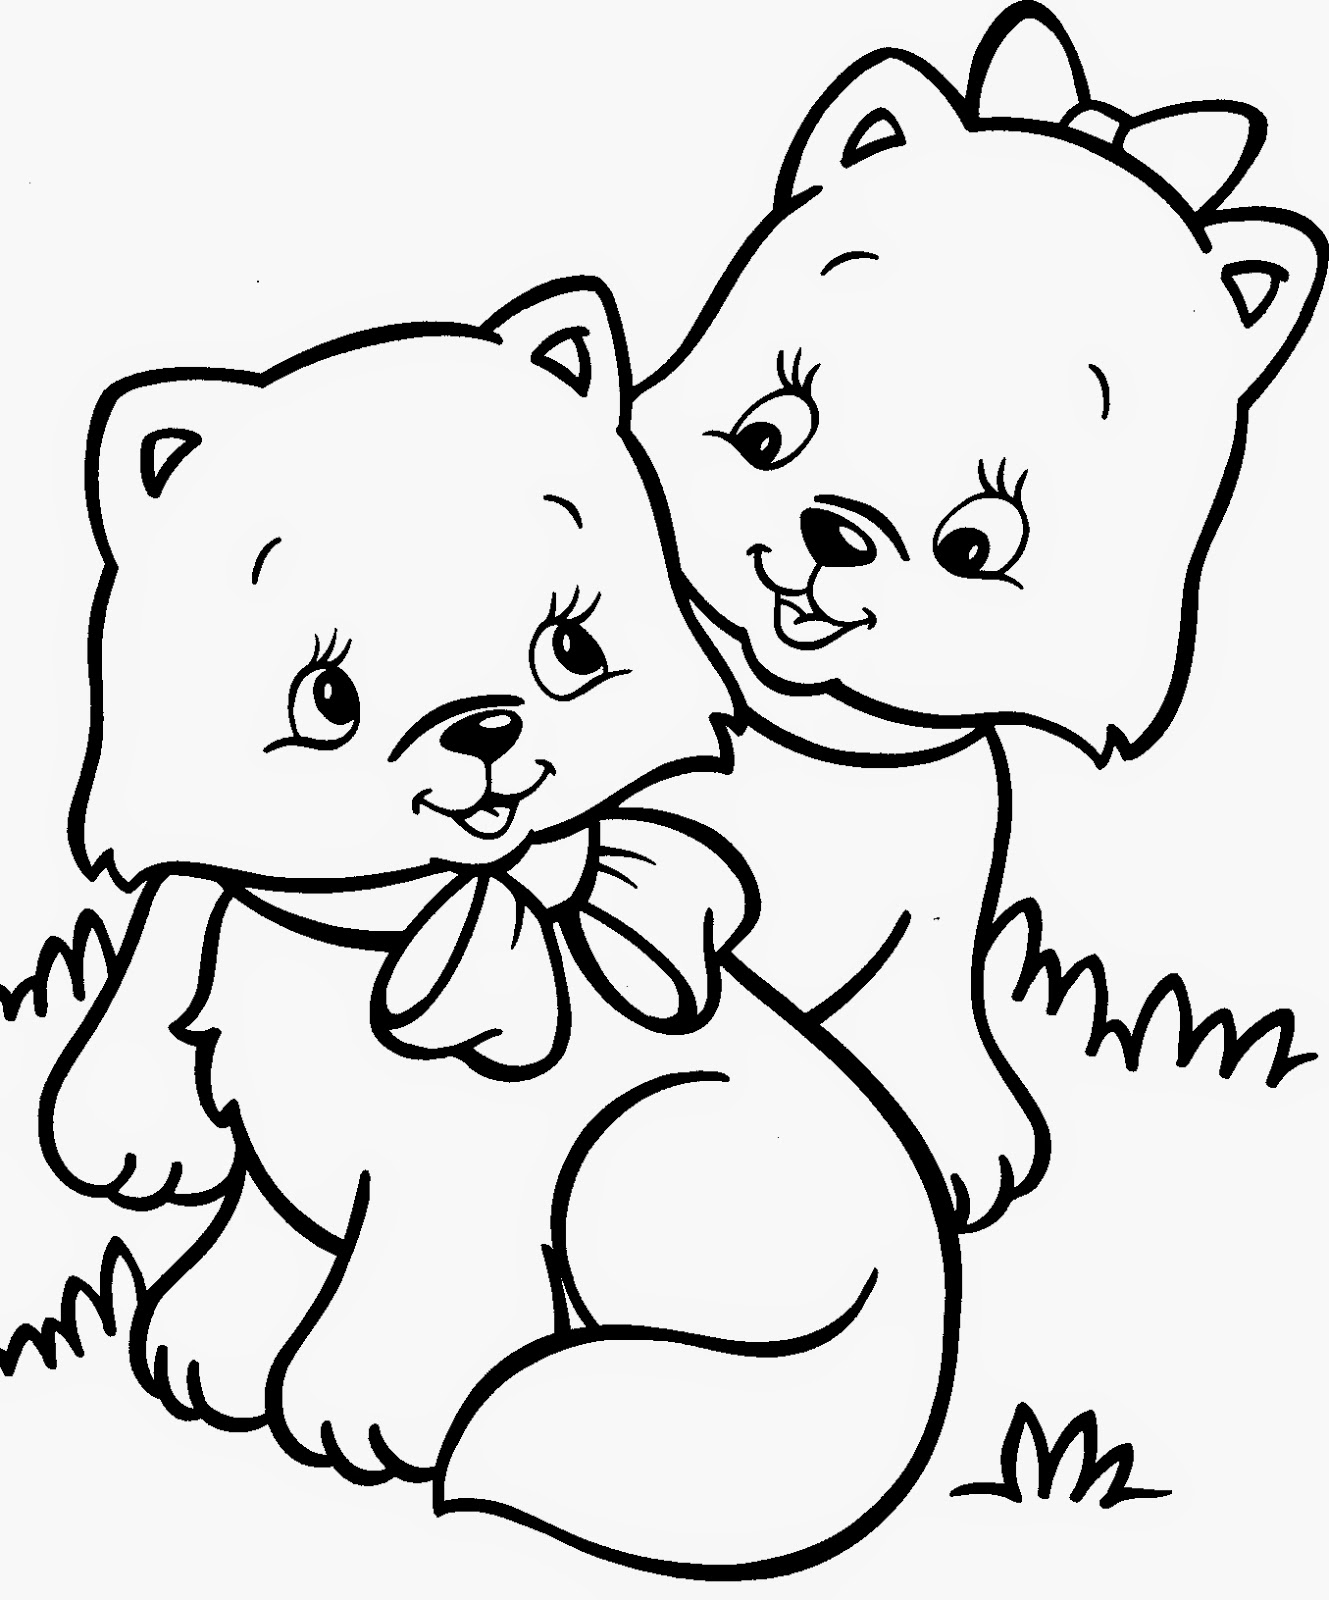 coloring pages kitty free cat coloring pages coloring kitty pages